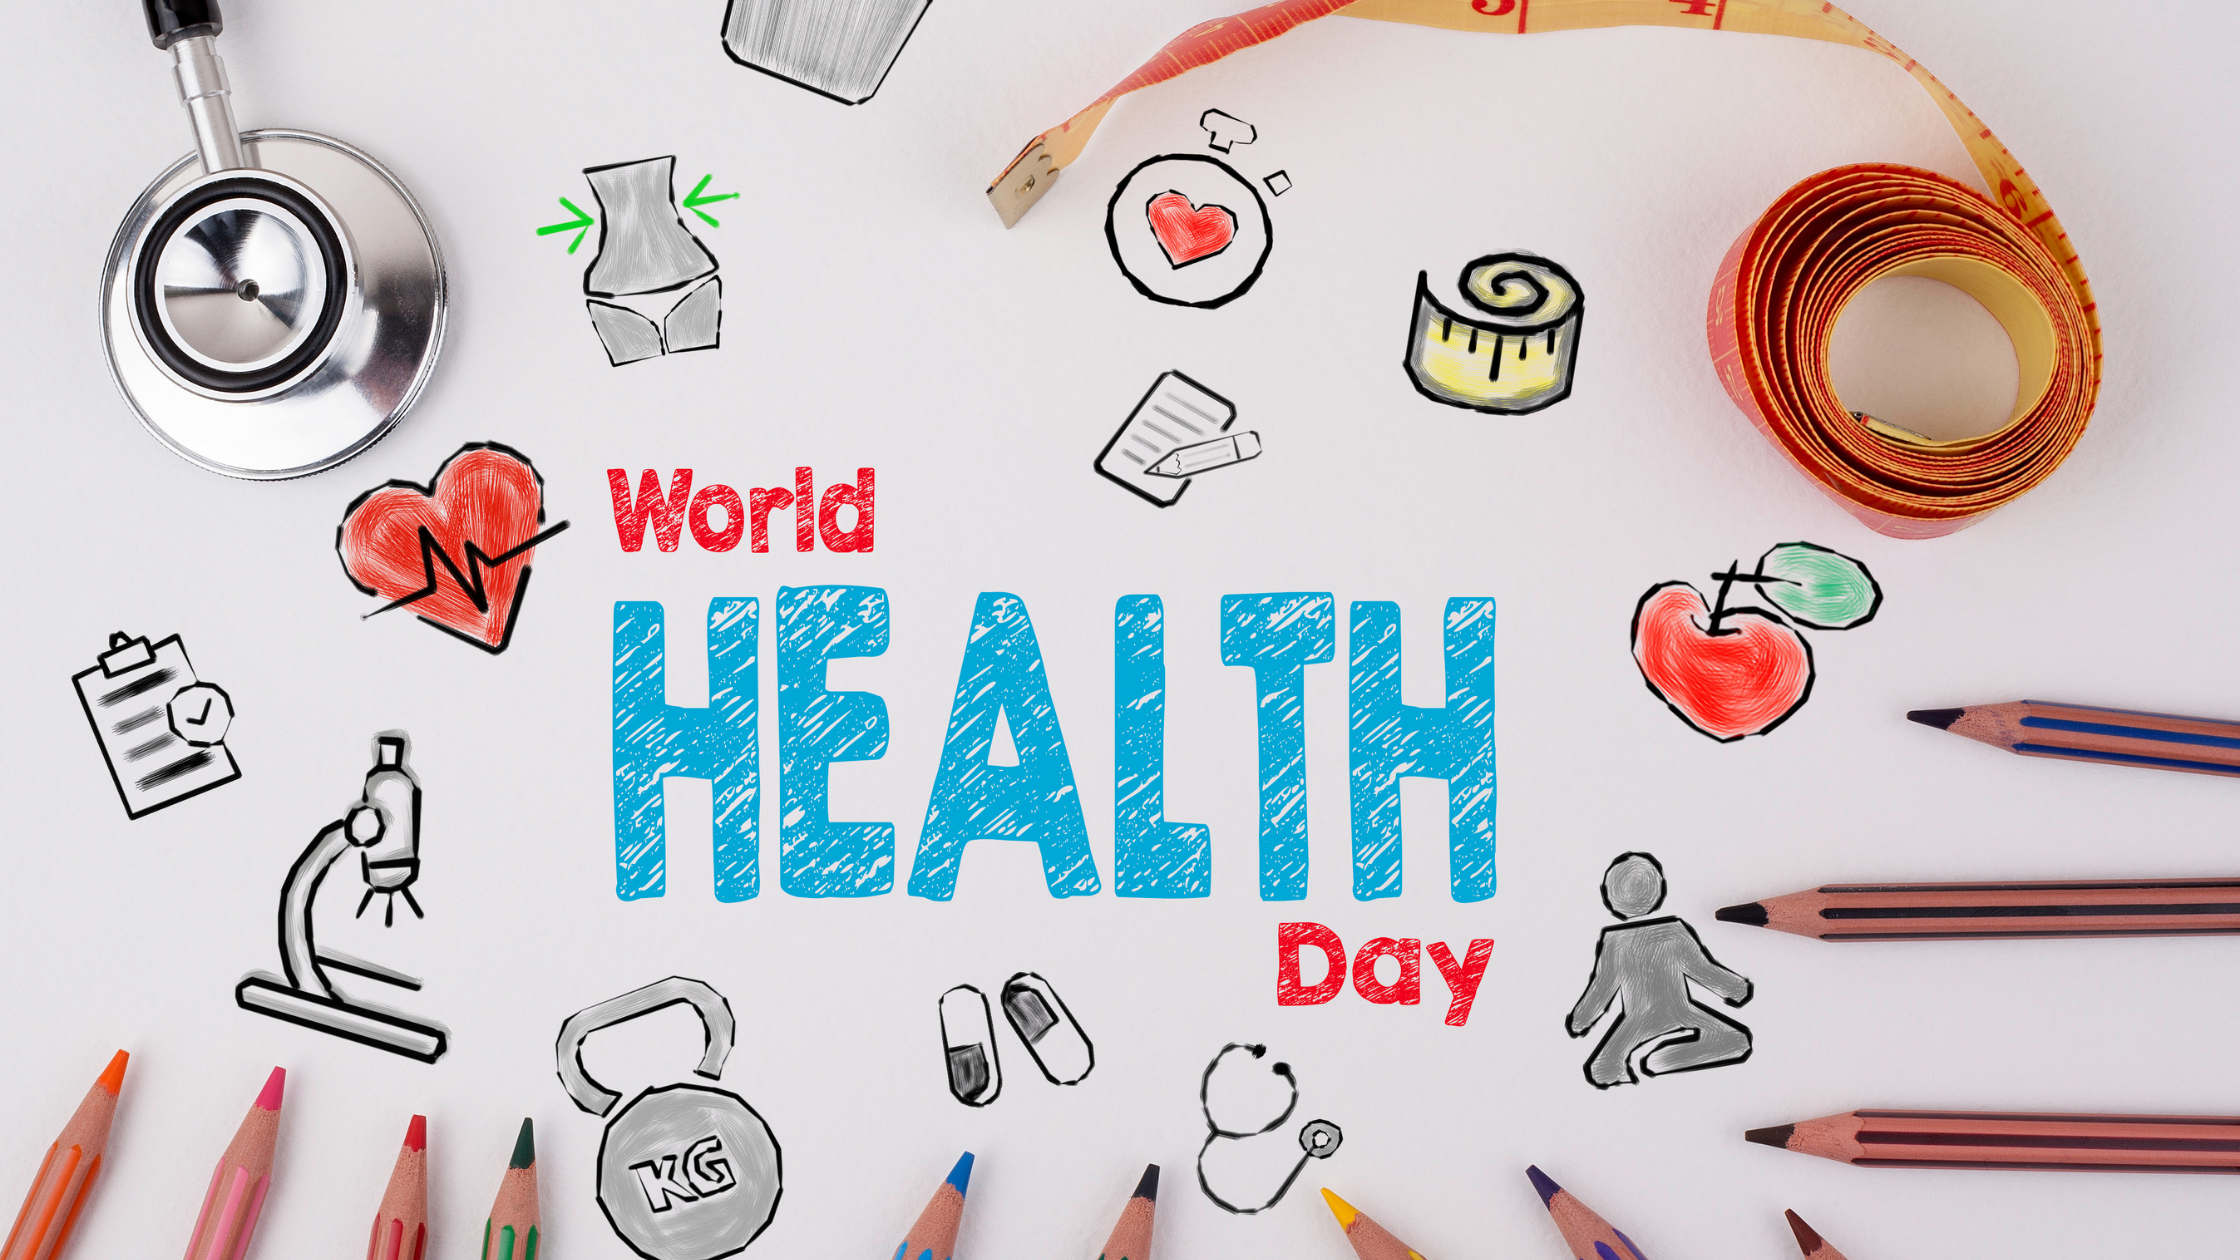 Happy World Health Day! How Can We Achieve a Healthier & Fairer World?